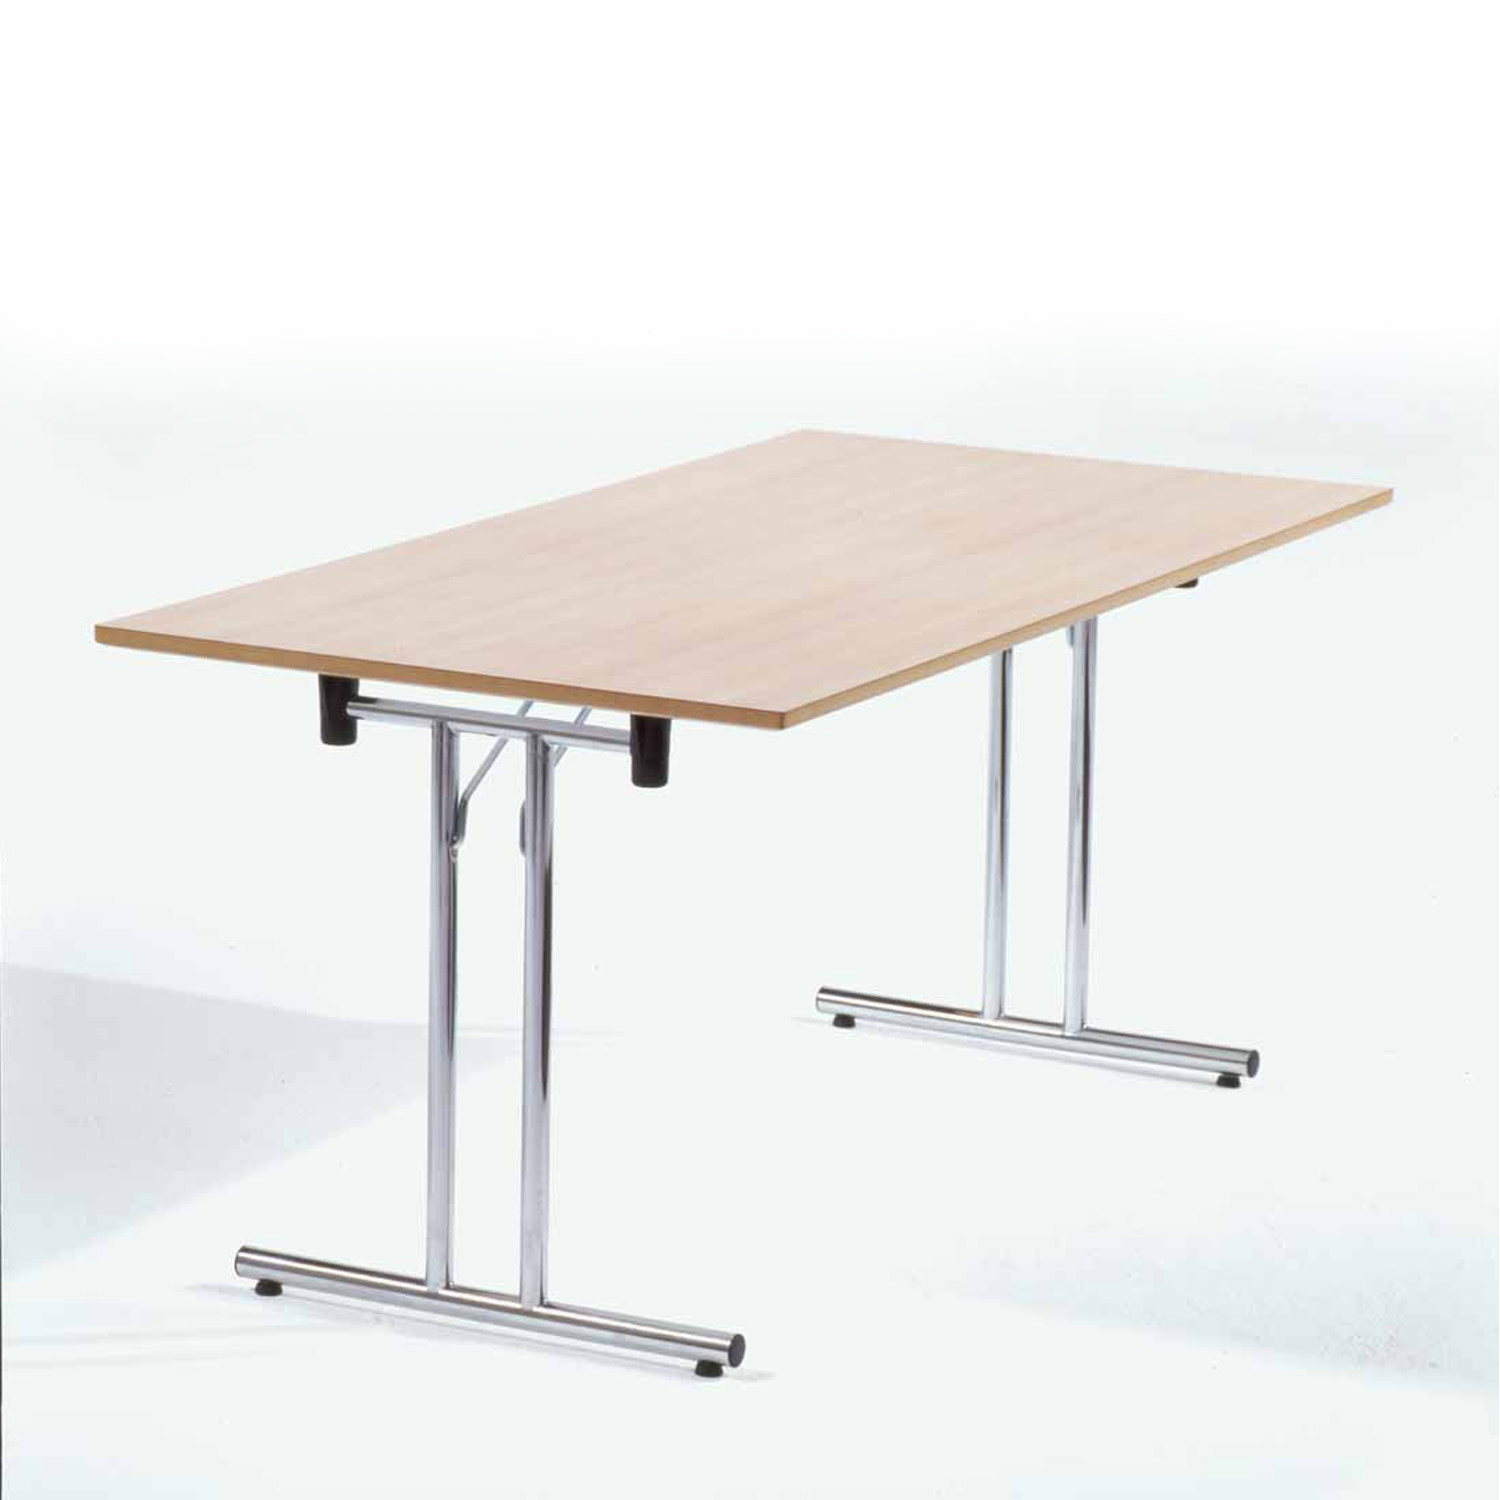 Platto Rectangular Fold Out Legs Table